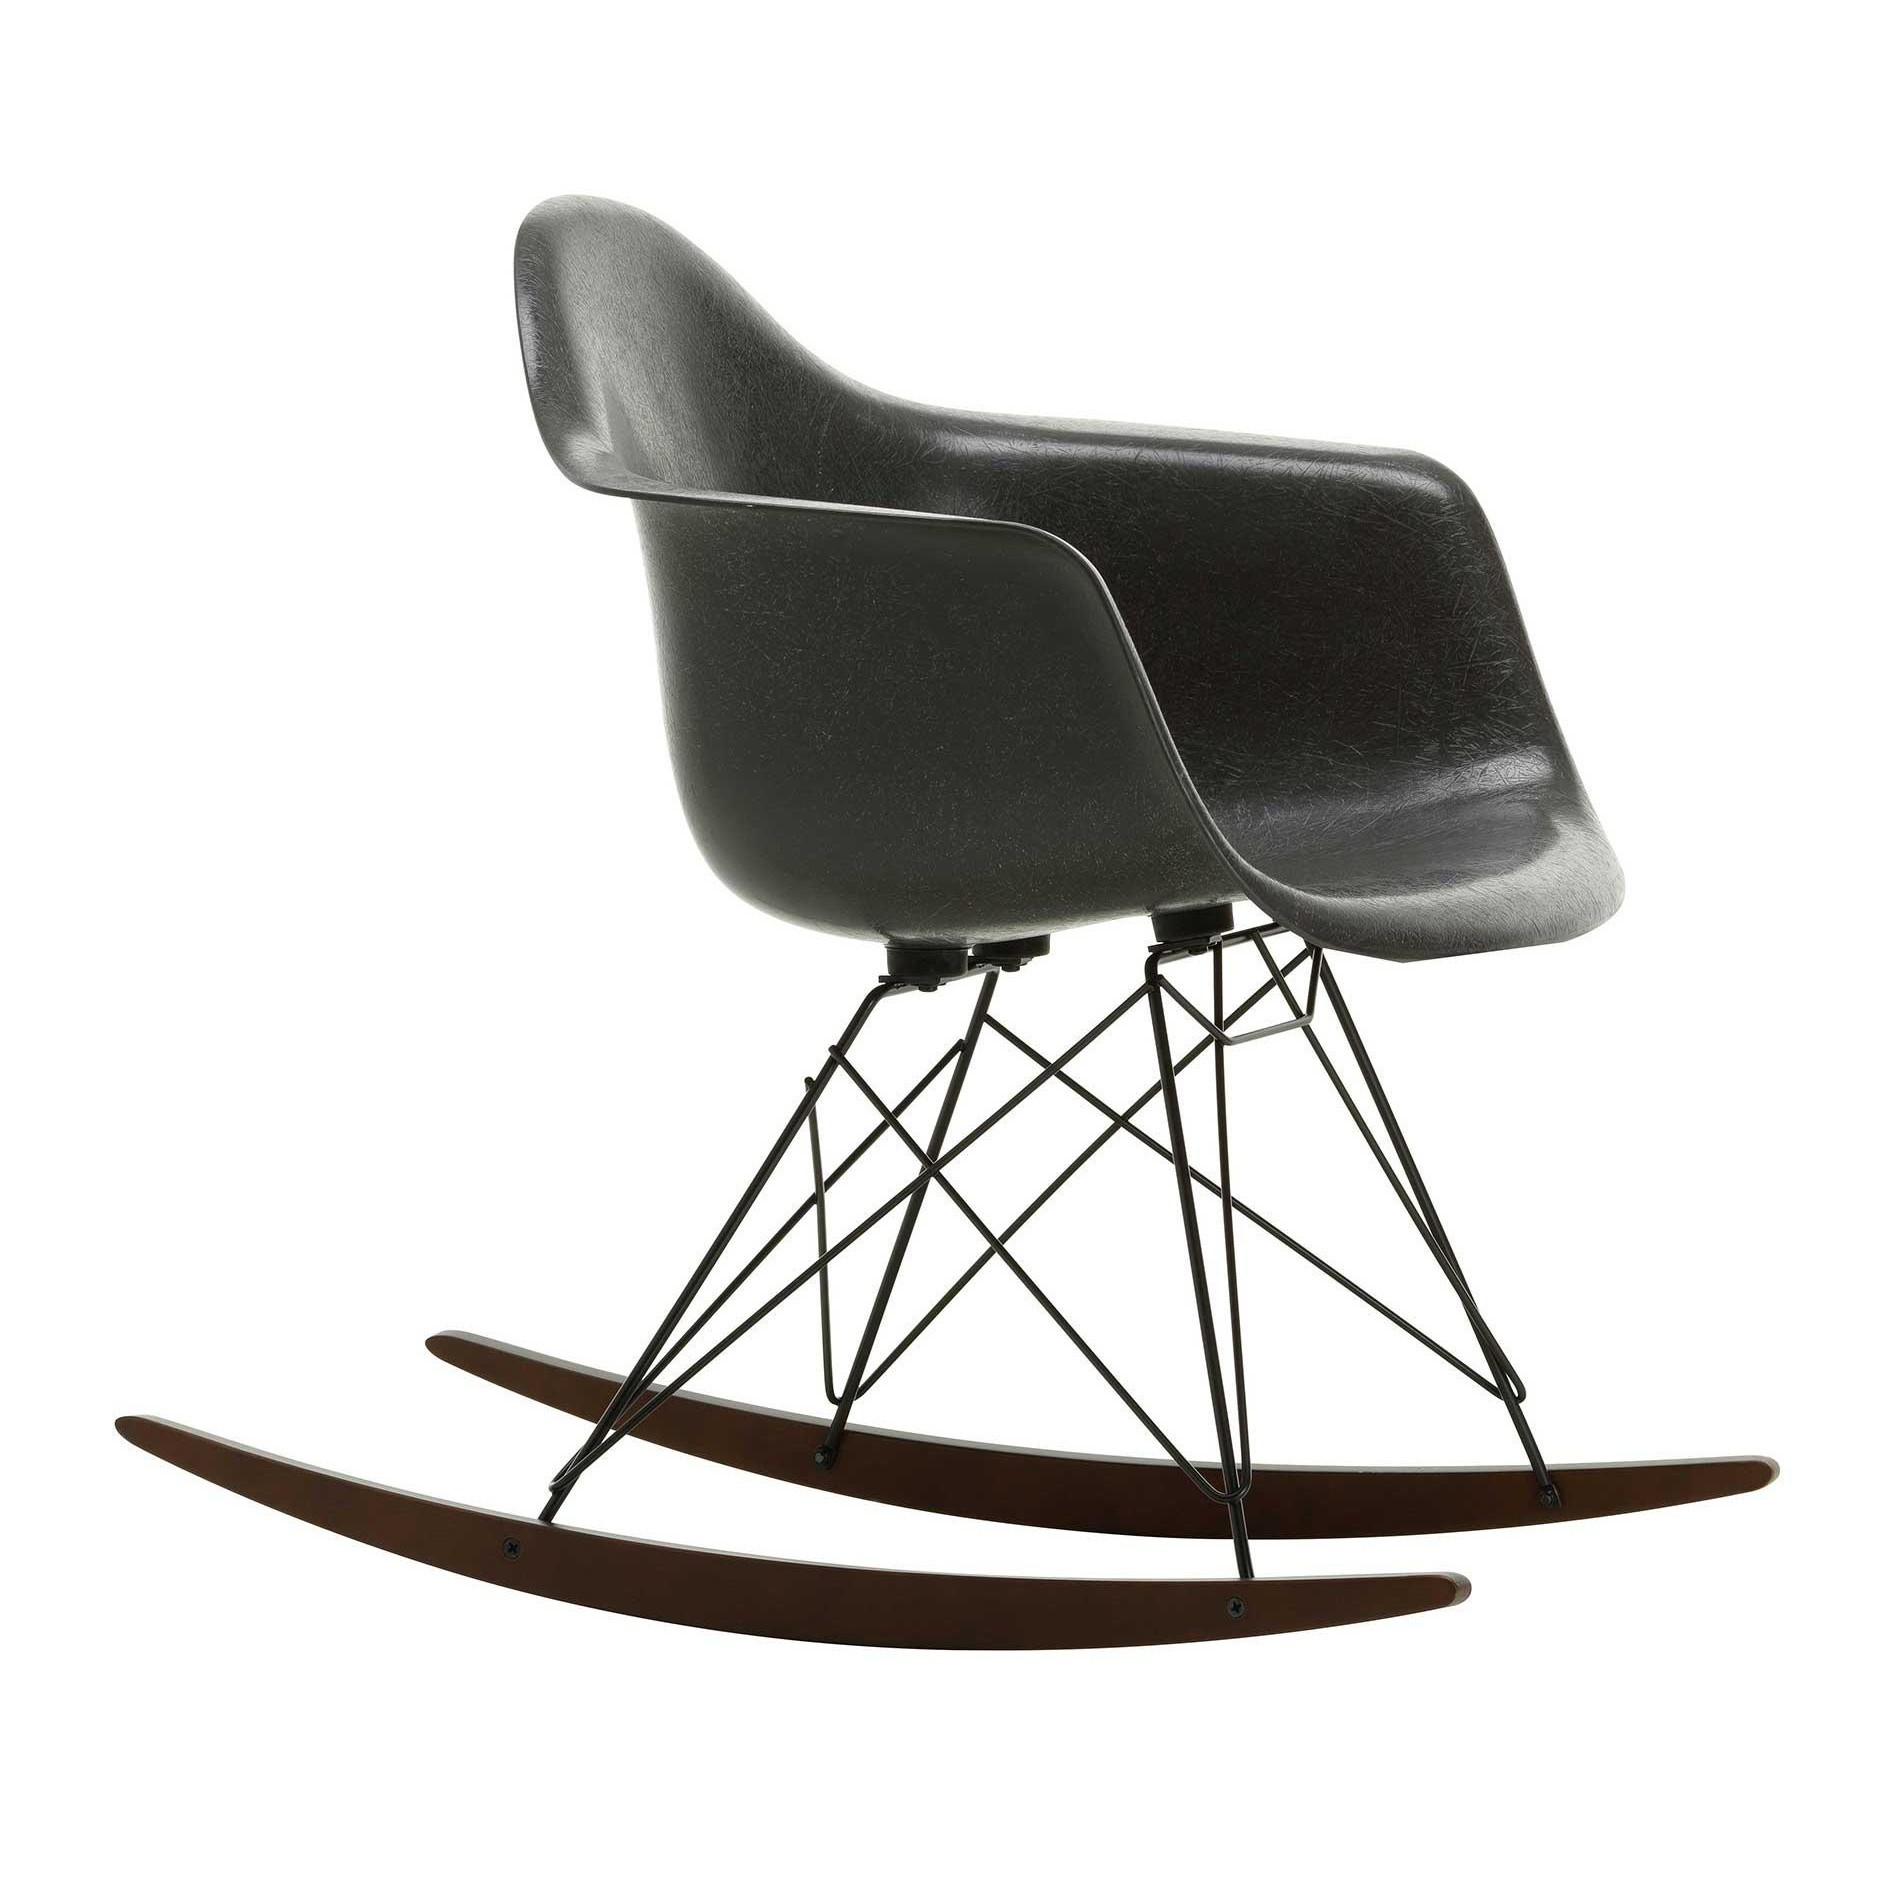 Chair Eames Vitra Eames Fiberglass Armchair Rar Rocking Chair Black Base | Ambientedirect